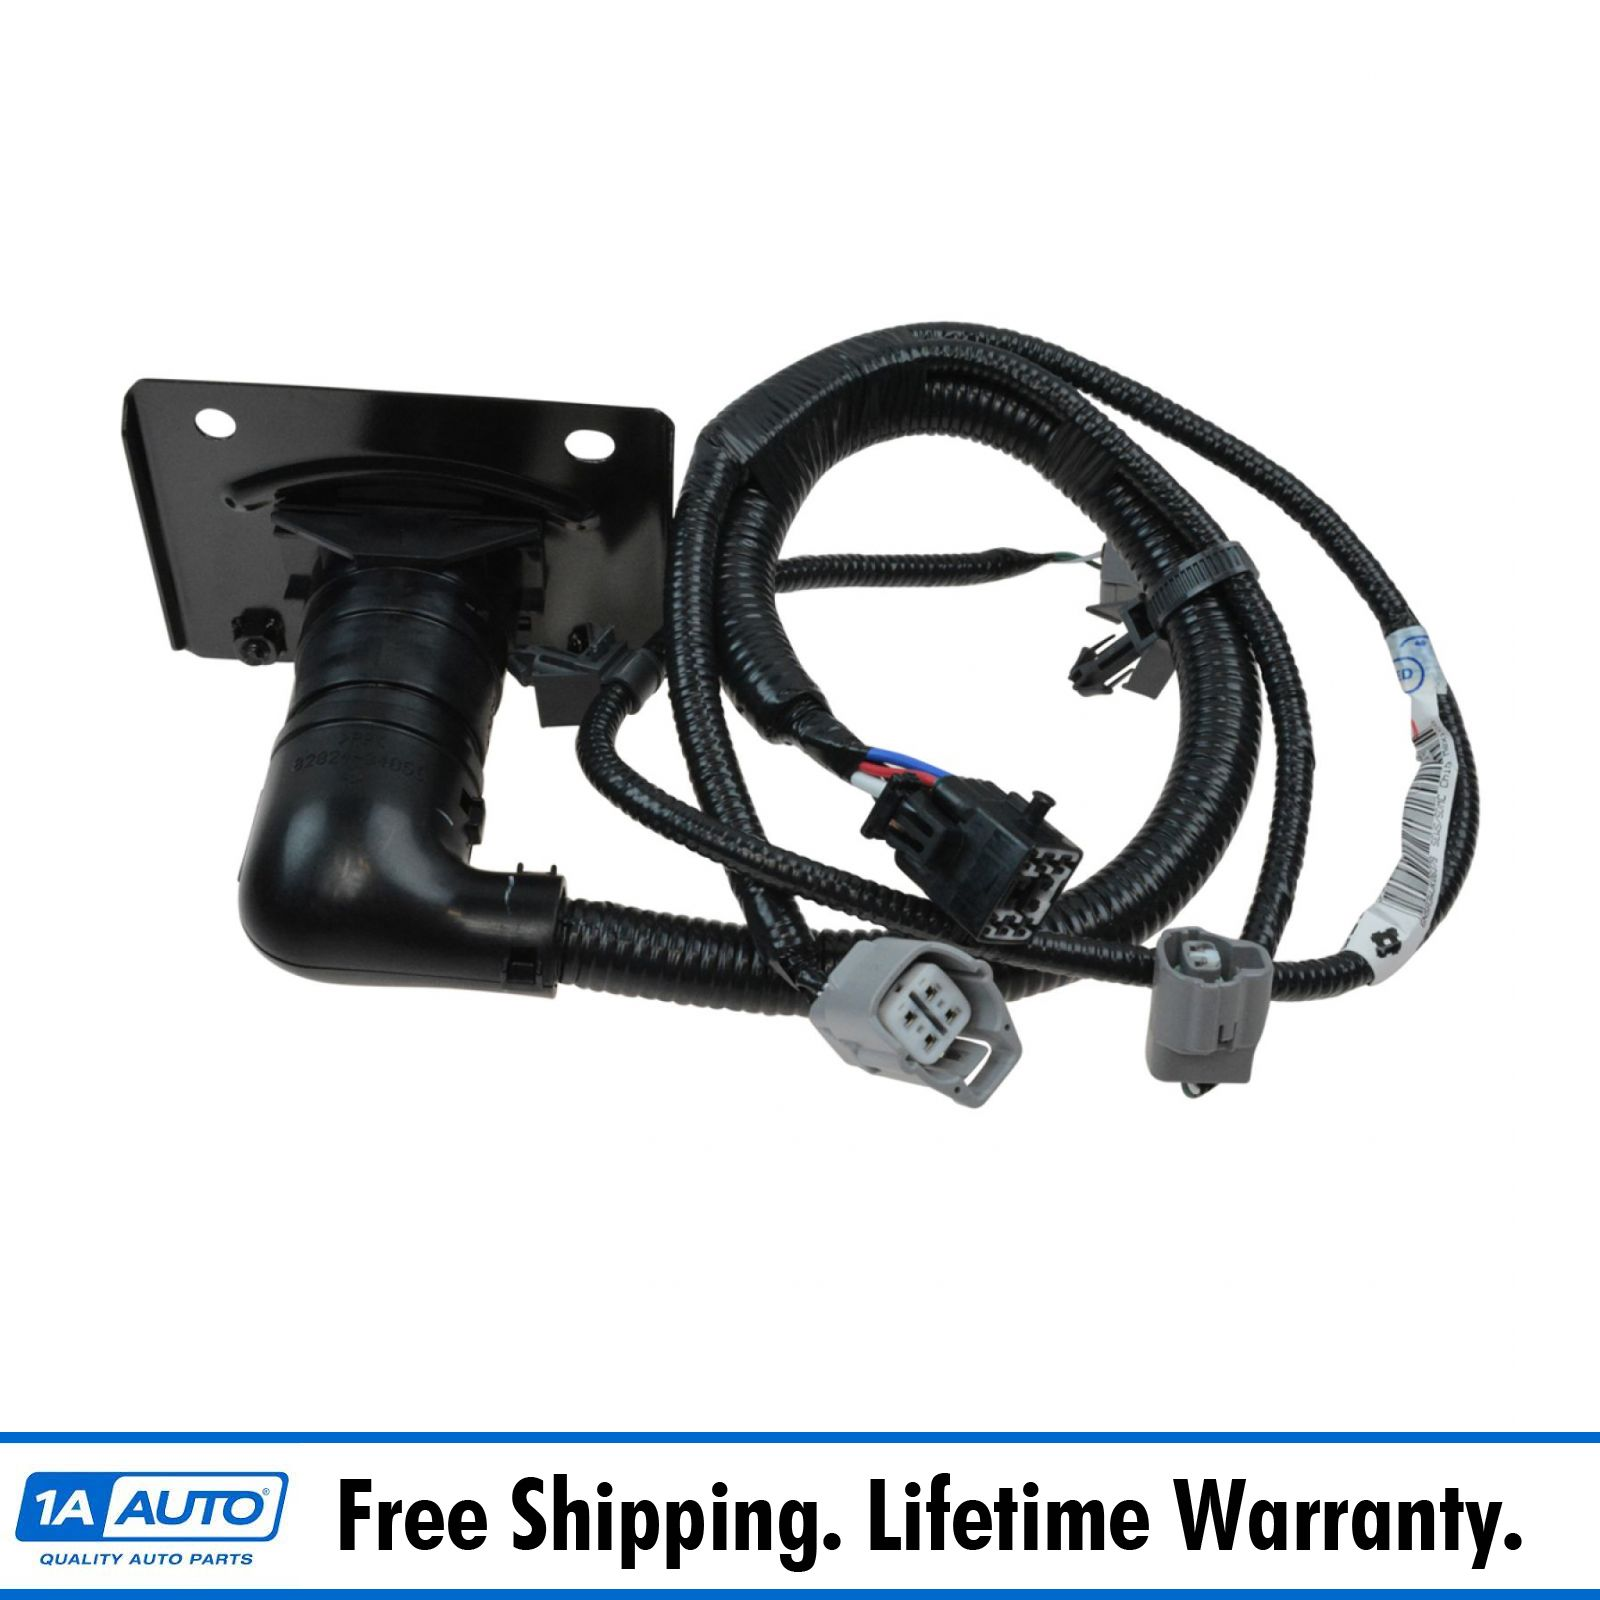 Oem Trailer Tow Hitch Wiring Harness 7 Pin Connector For Toyota Tacoma Brand New